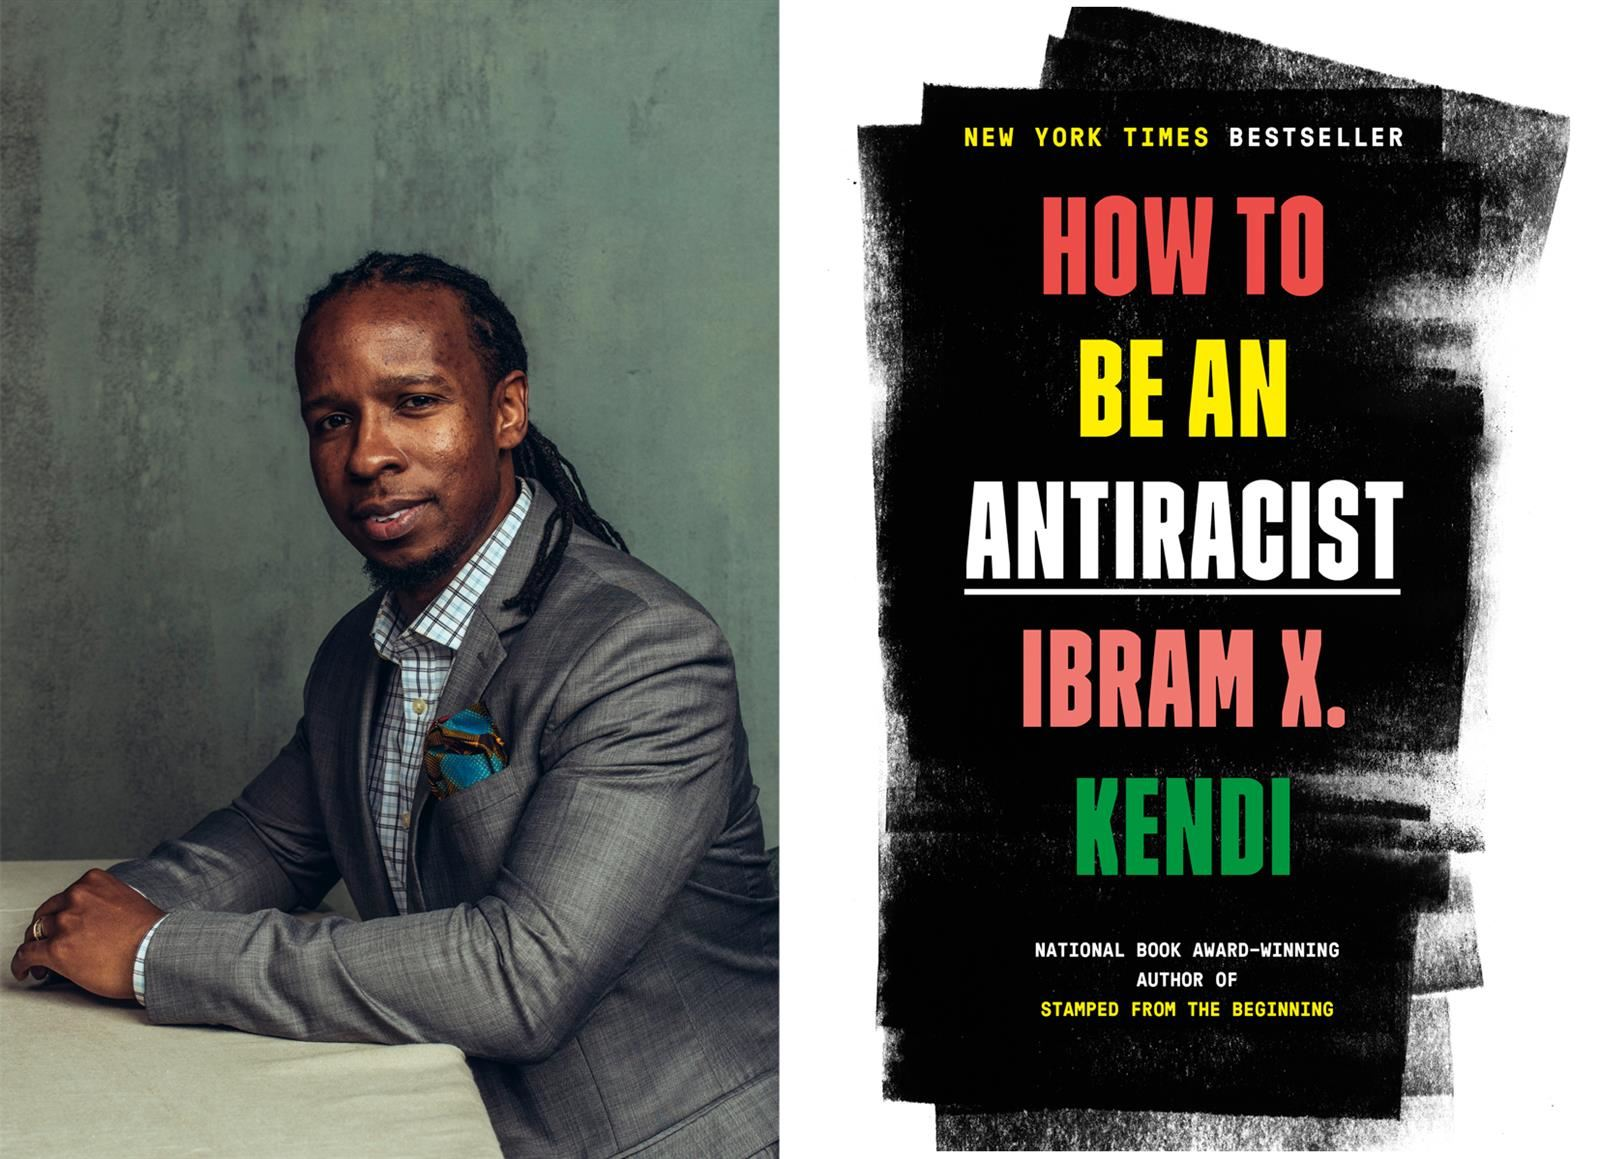 Ibram X. Kendi and cover of his book